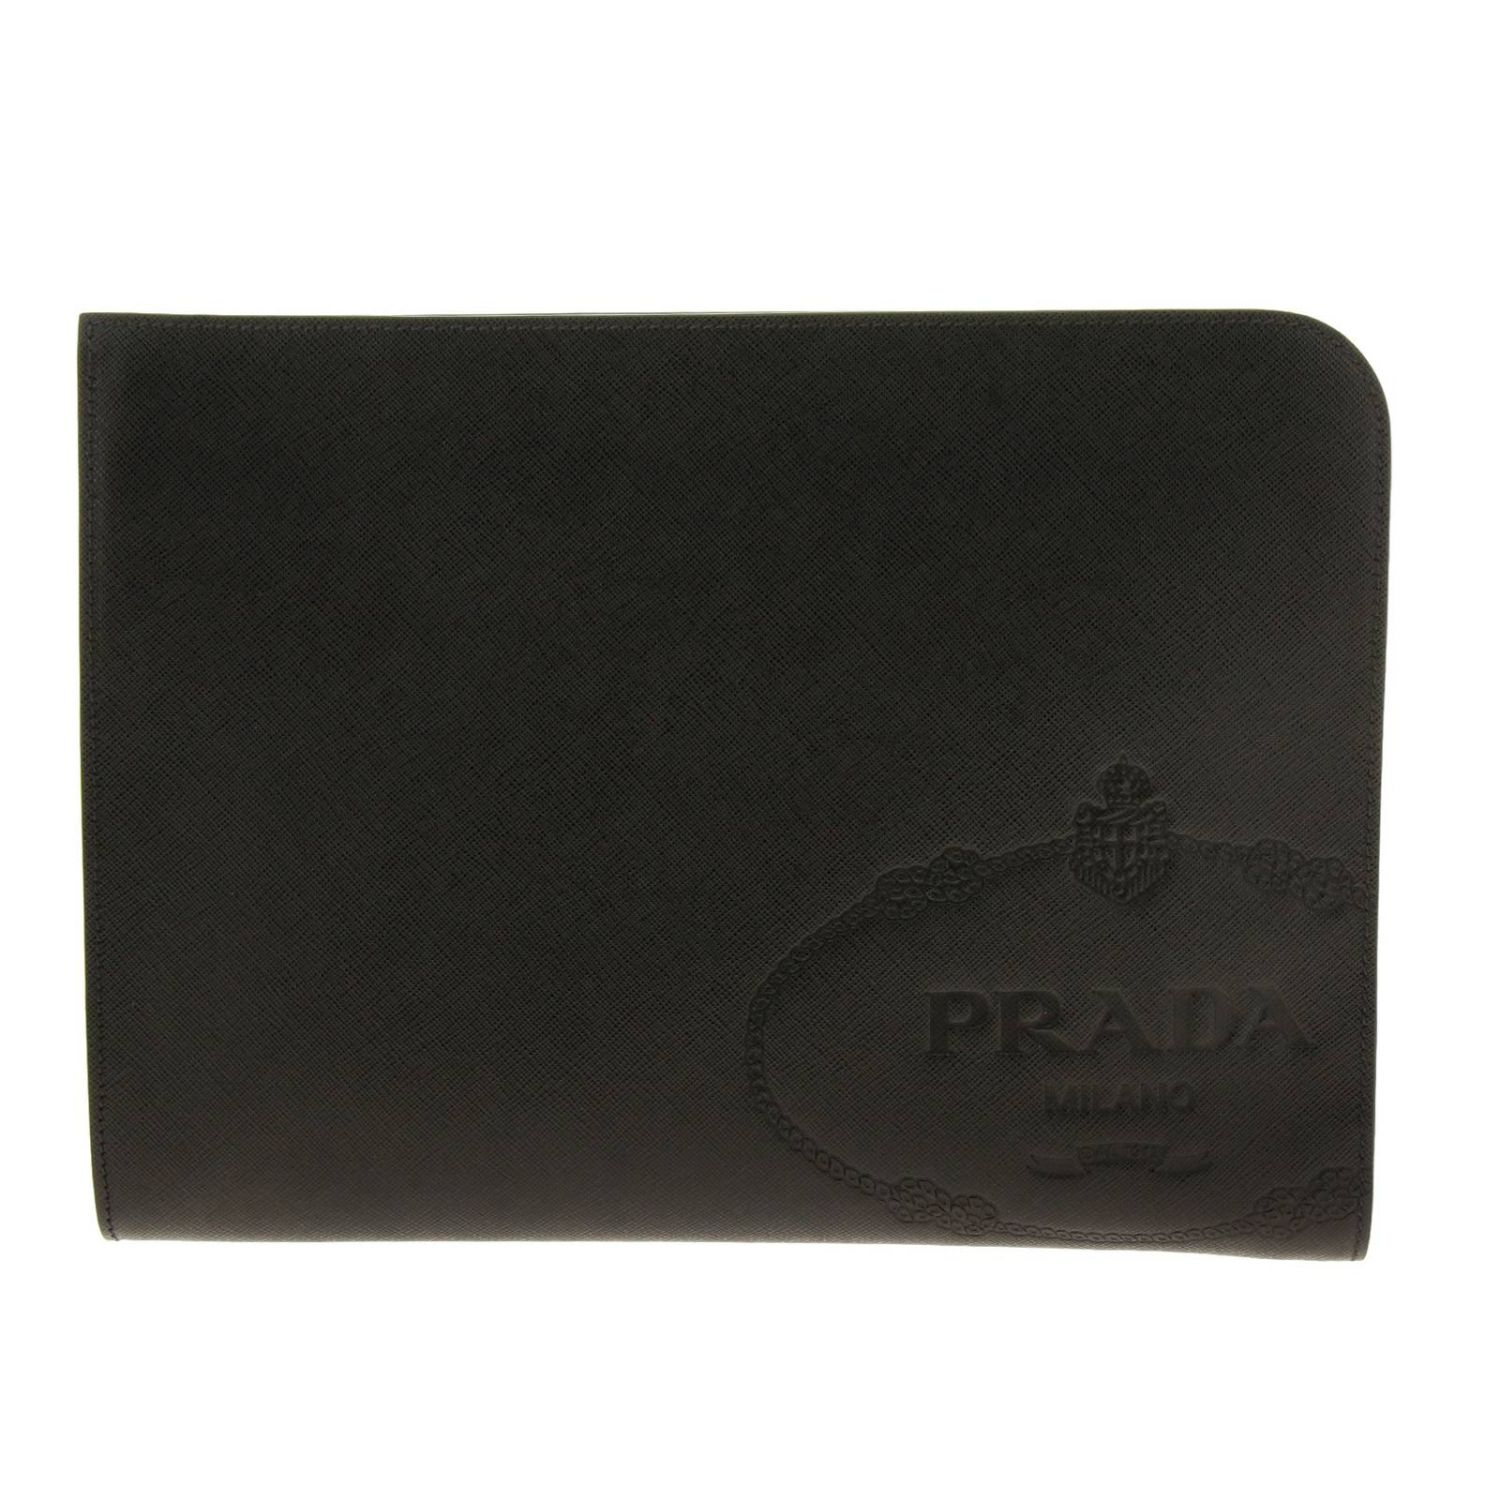 Briefcase Prada: Prada maxi pochette in saffiano leather with embossed Cartiglio logo black 1